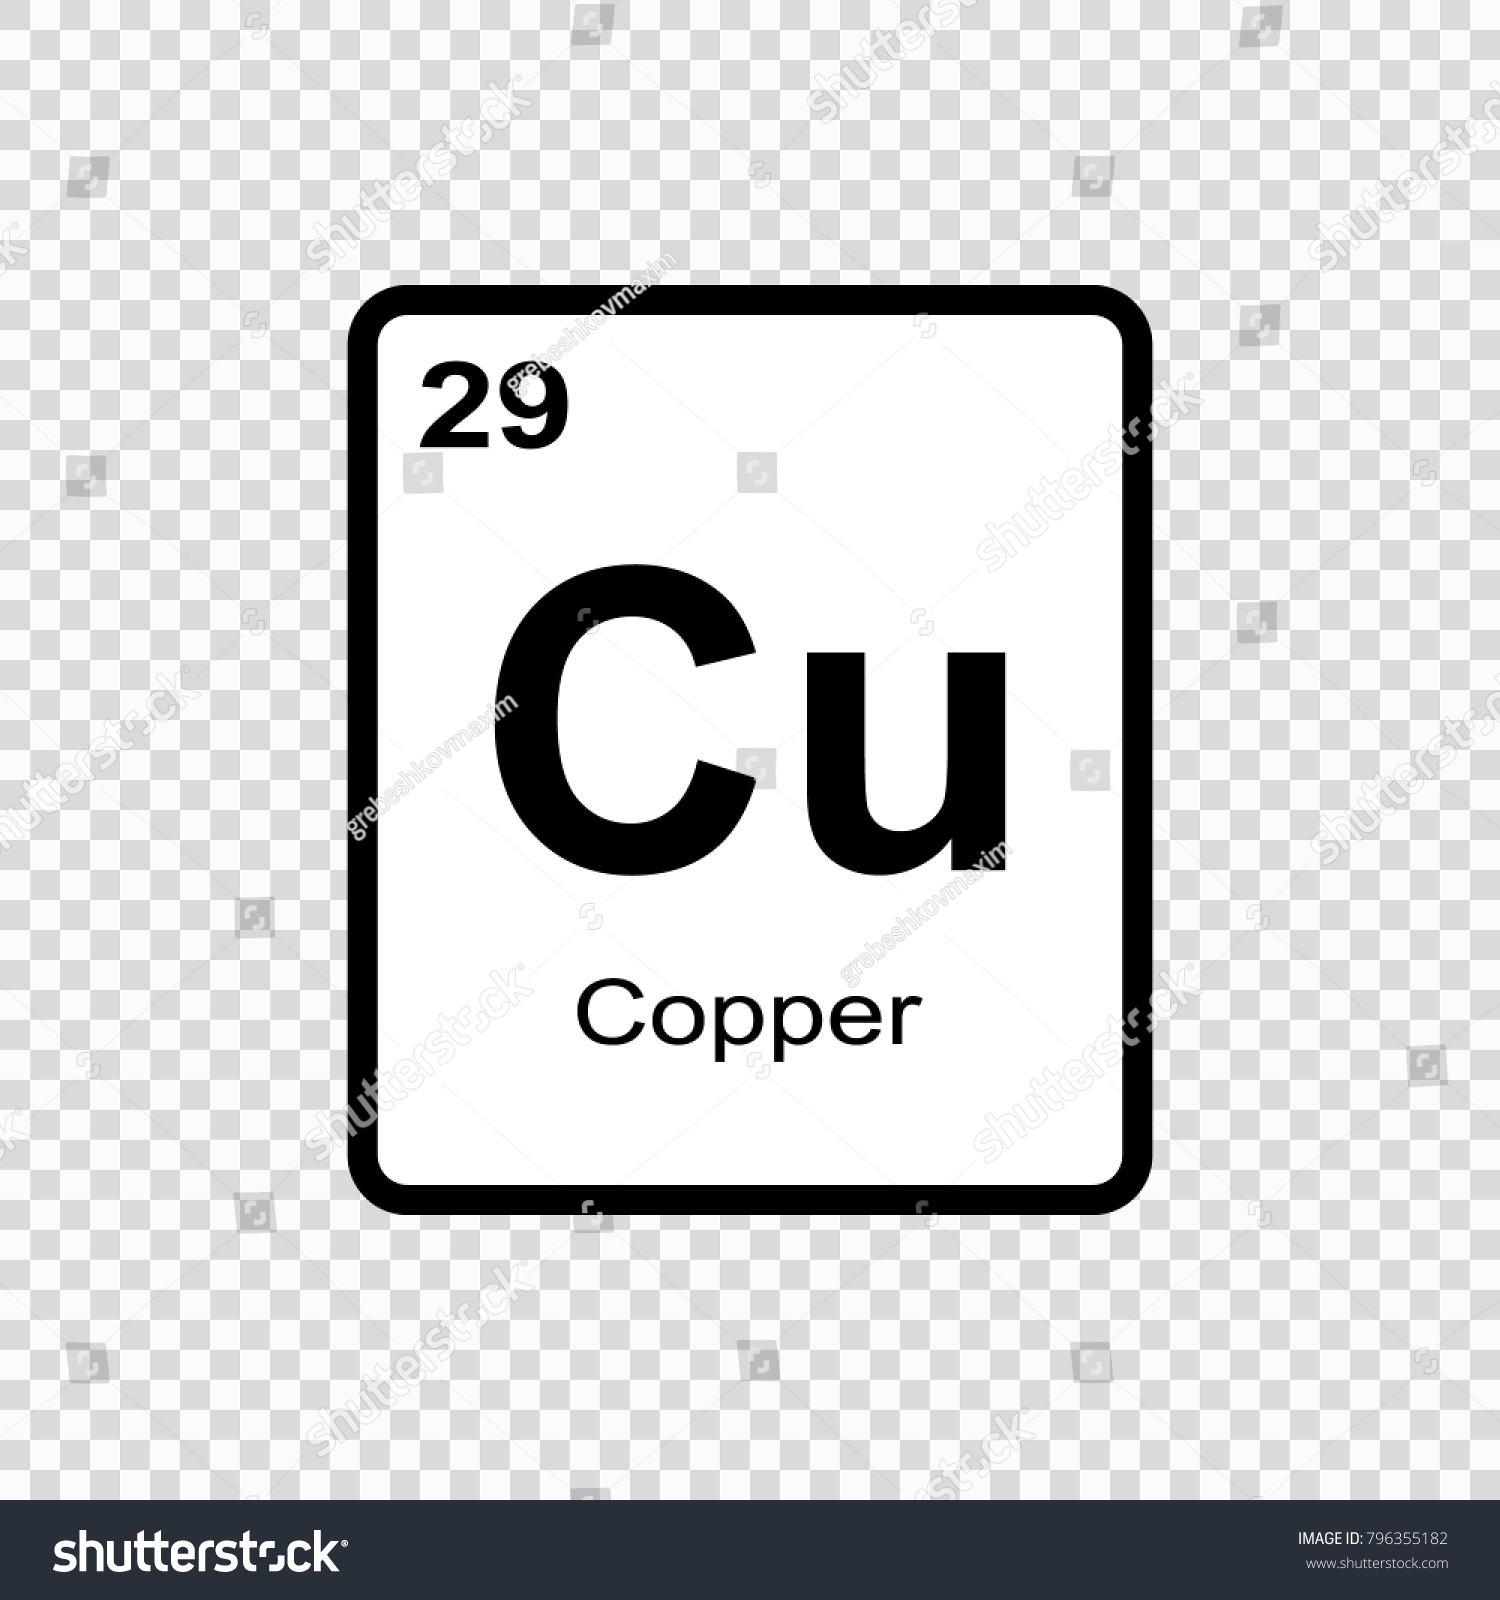 Atomic symbol of copper gallery symbol and sign ideas copper chemical element sign atomic number stock vector 796355182 copper chemical element sign with atomic number urtaz Choice Image